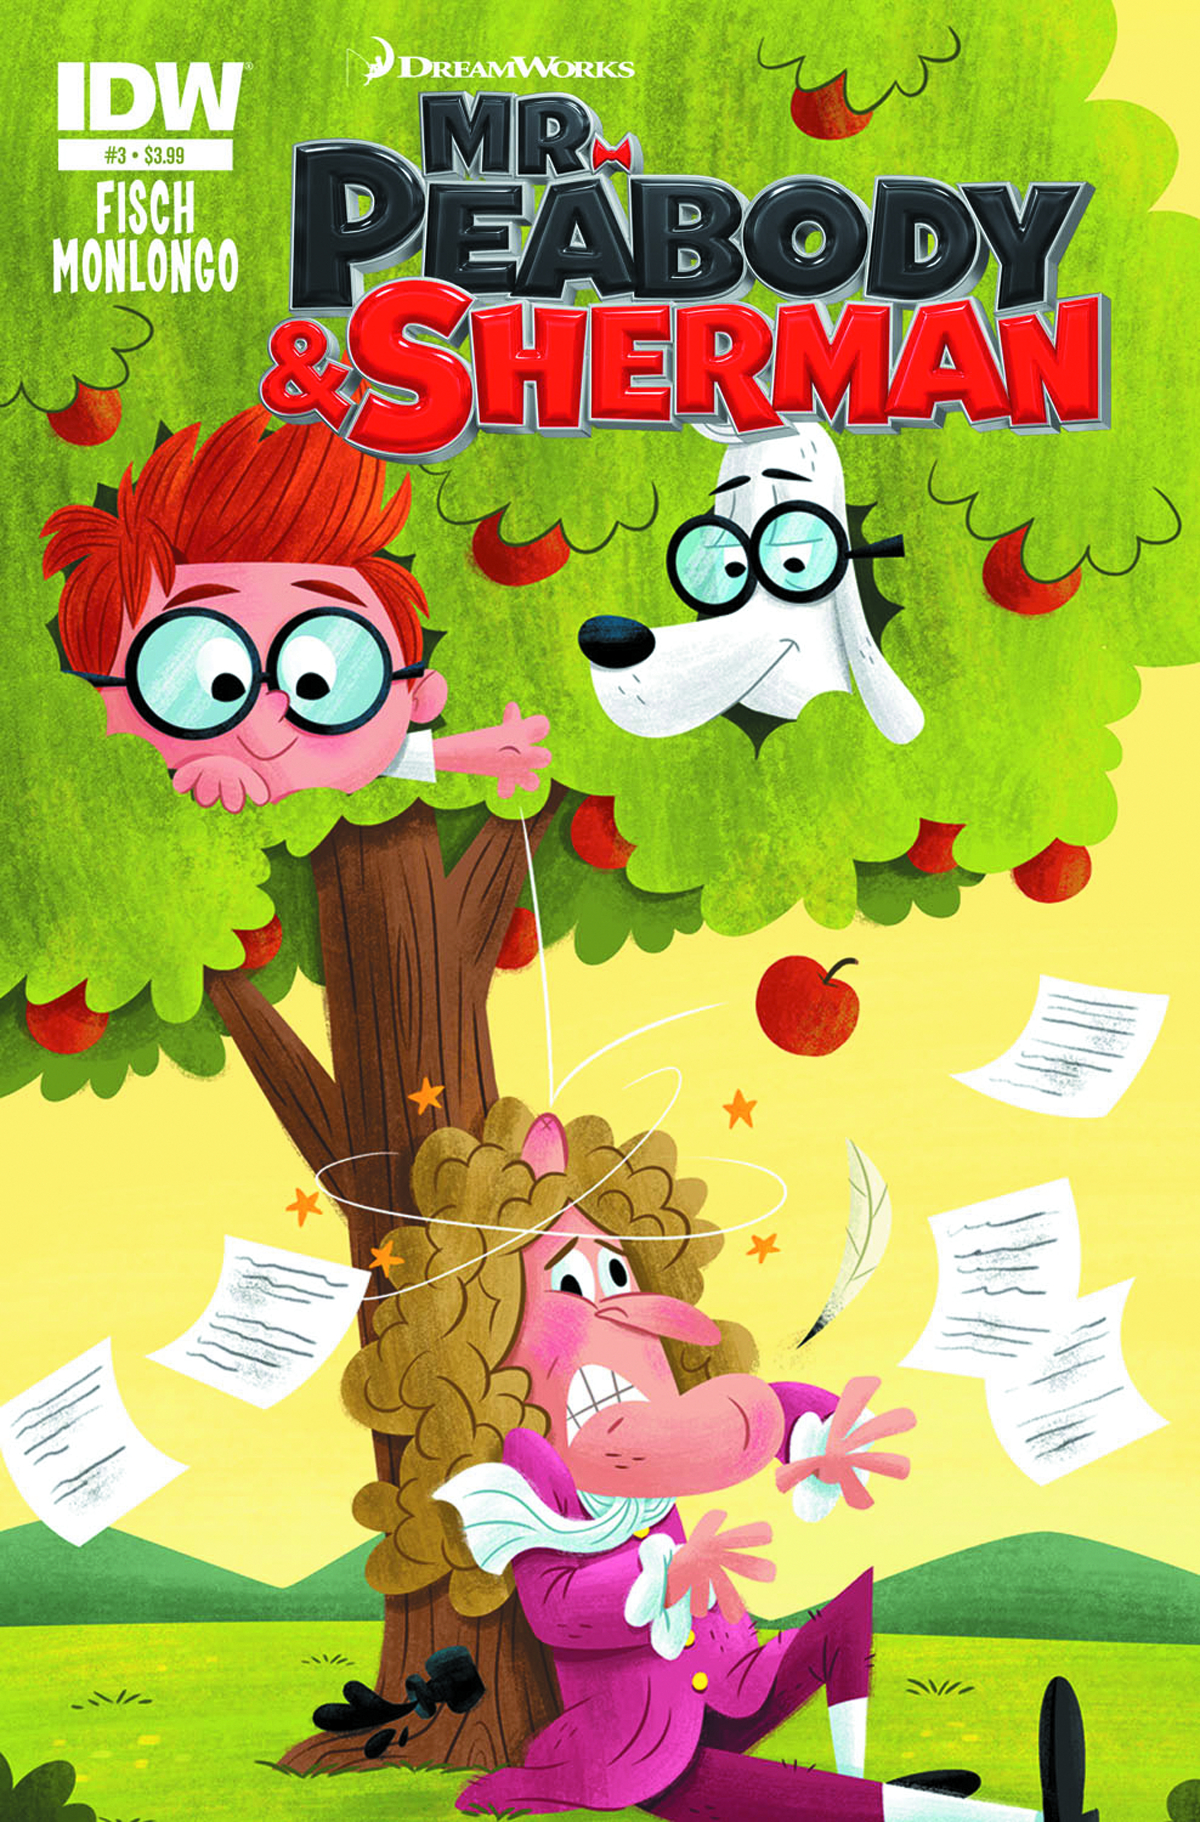 MR PEABODY & SHERMAN #3